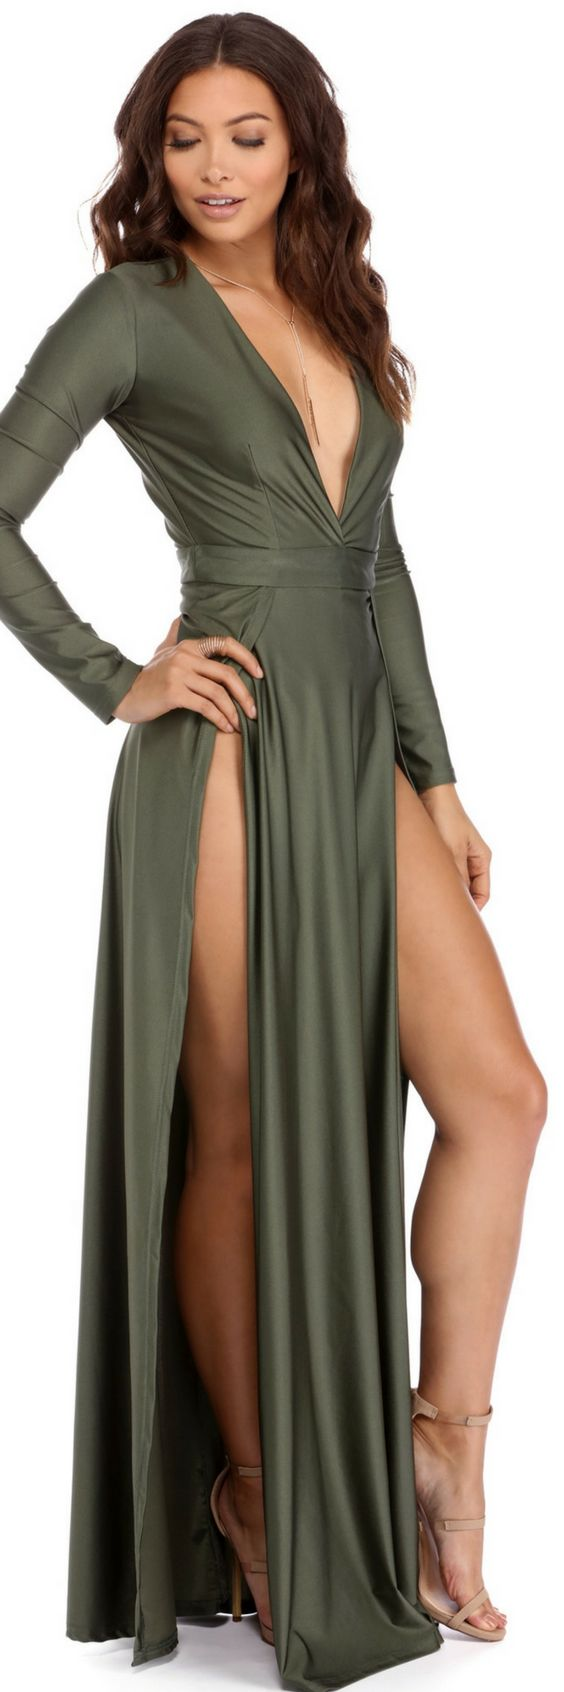 Windsorstore DESIREE OLIVE DOUBLE SLIT DRESS